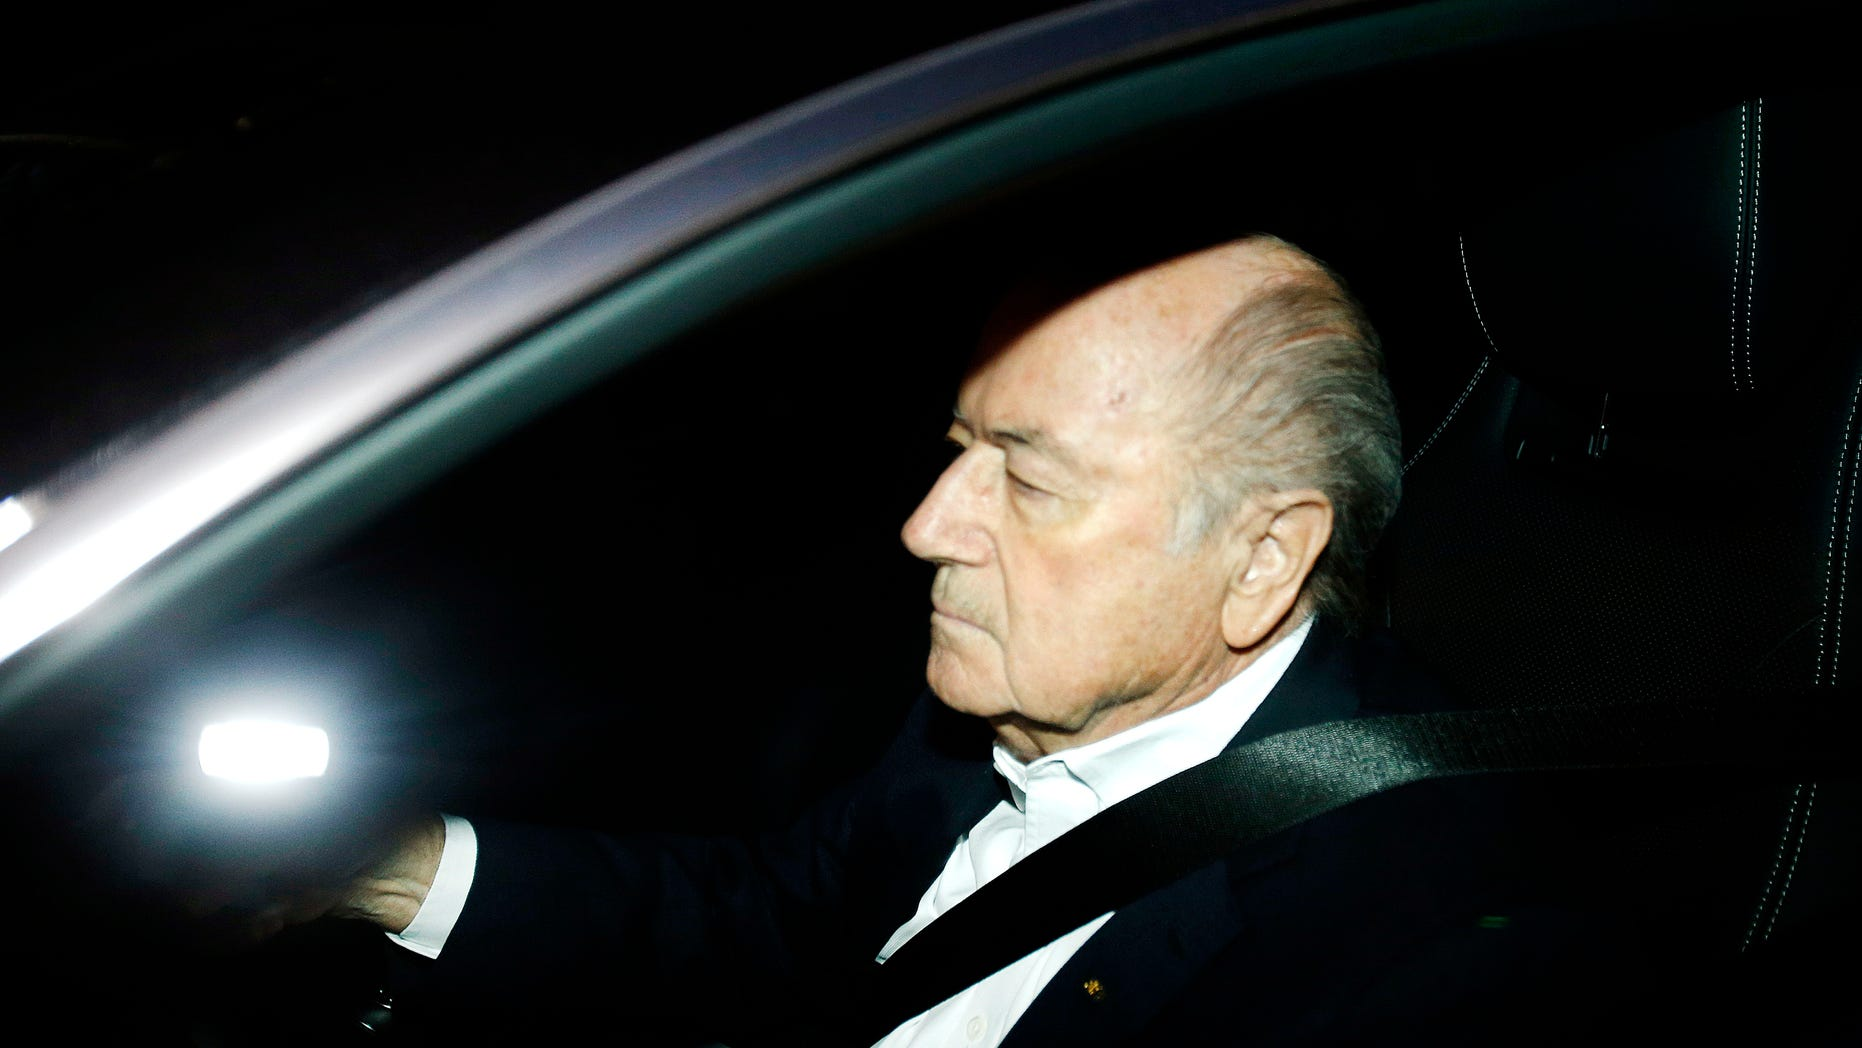 FILE - In this Sept. 29, 2015 file photo FIFA President Sepp Blatter drives his car into the garage of the FIFA headquarters on his way to work in Zurich, Switzerland (AP Photo/Michael Probst, file)